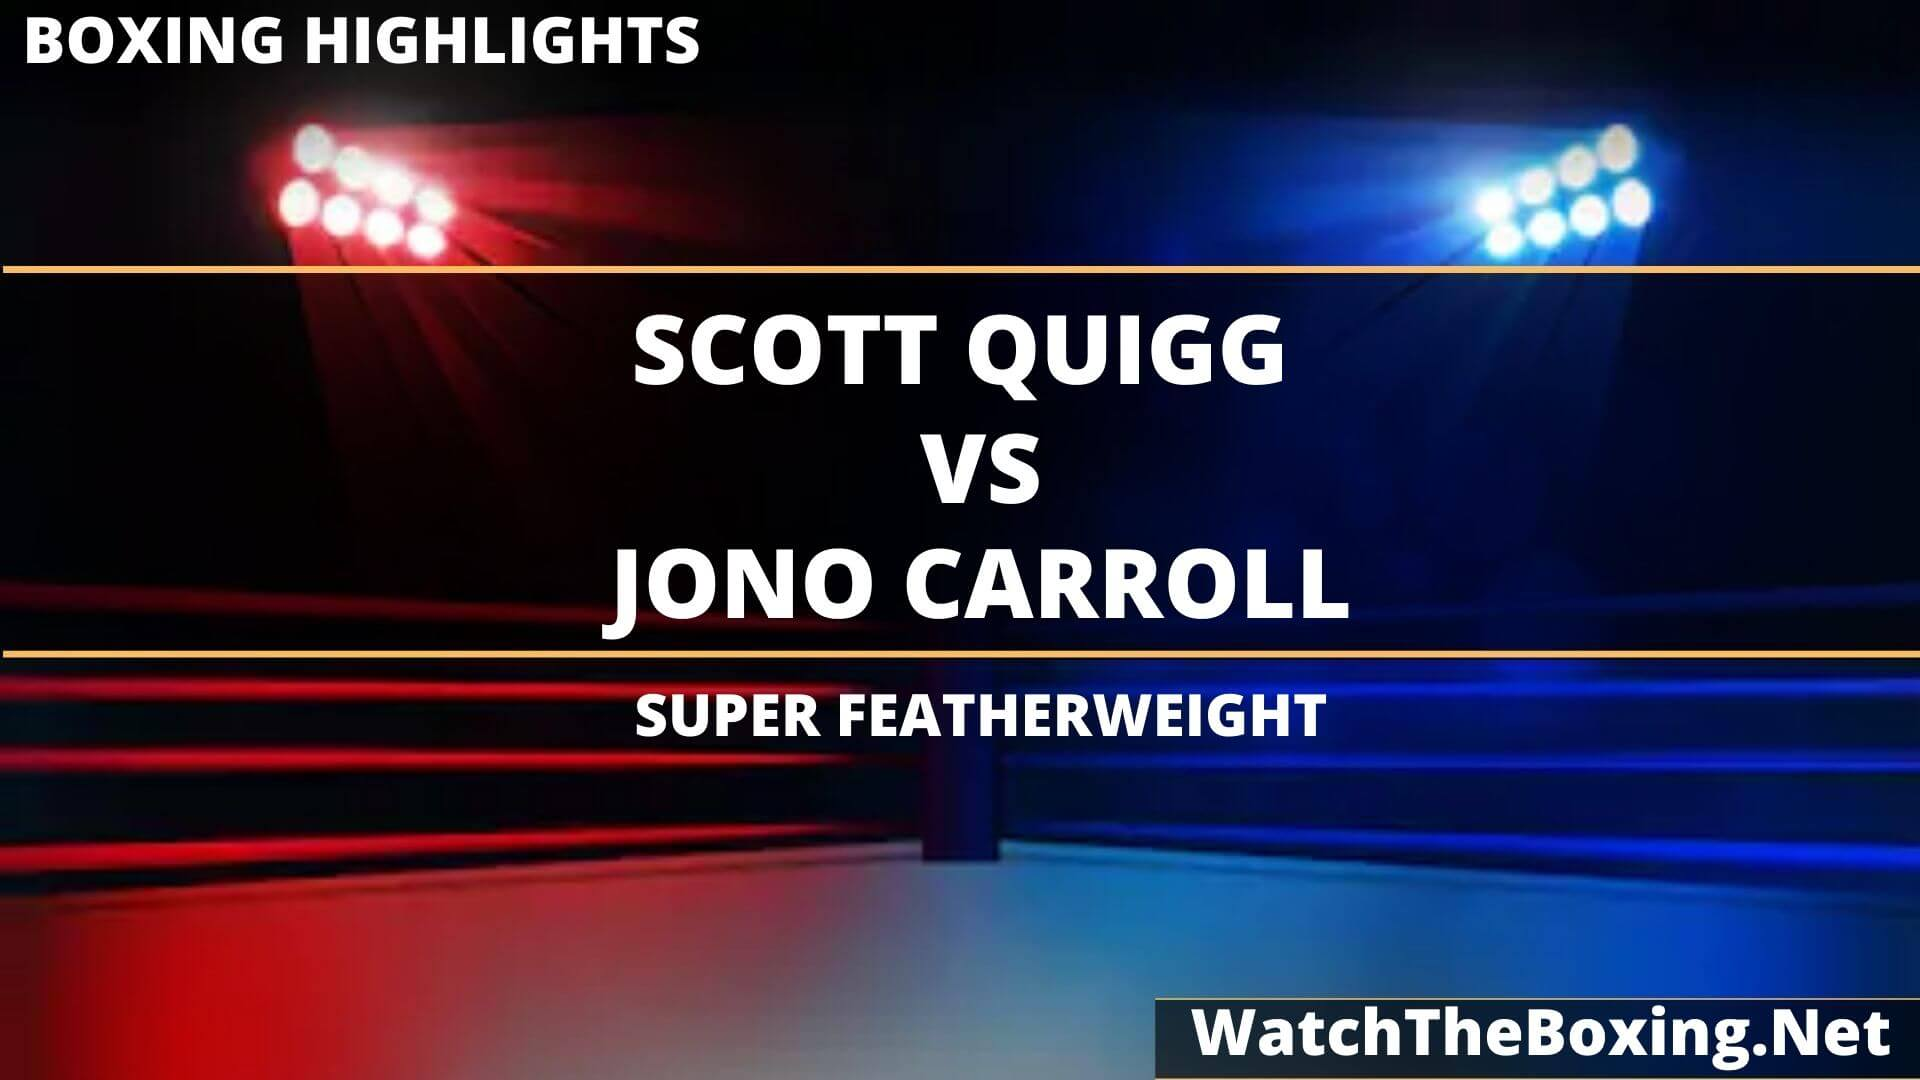 Scott Quigg Vs Jono Carroll Highlights 2020 Super Featherweight